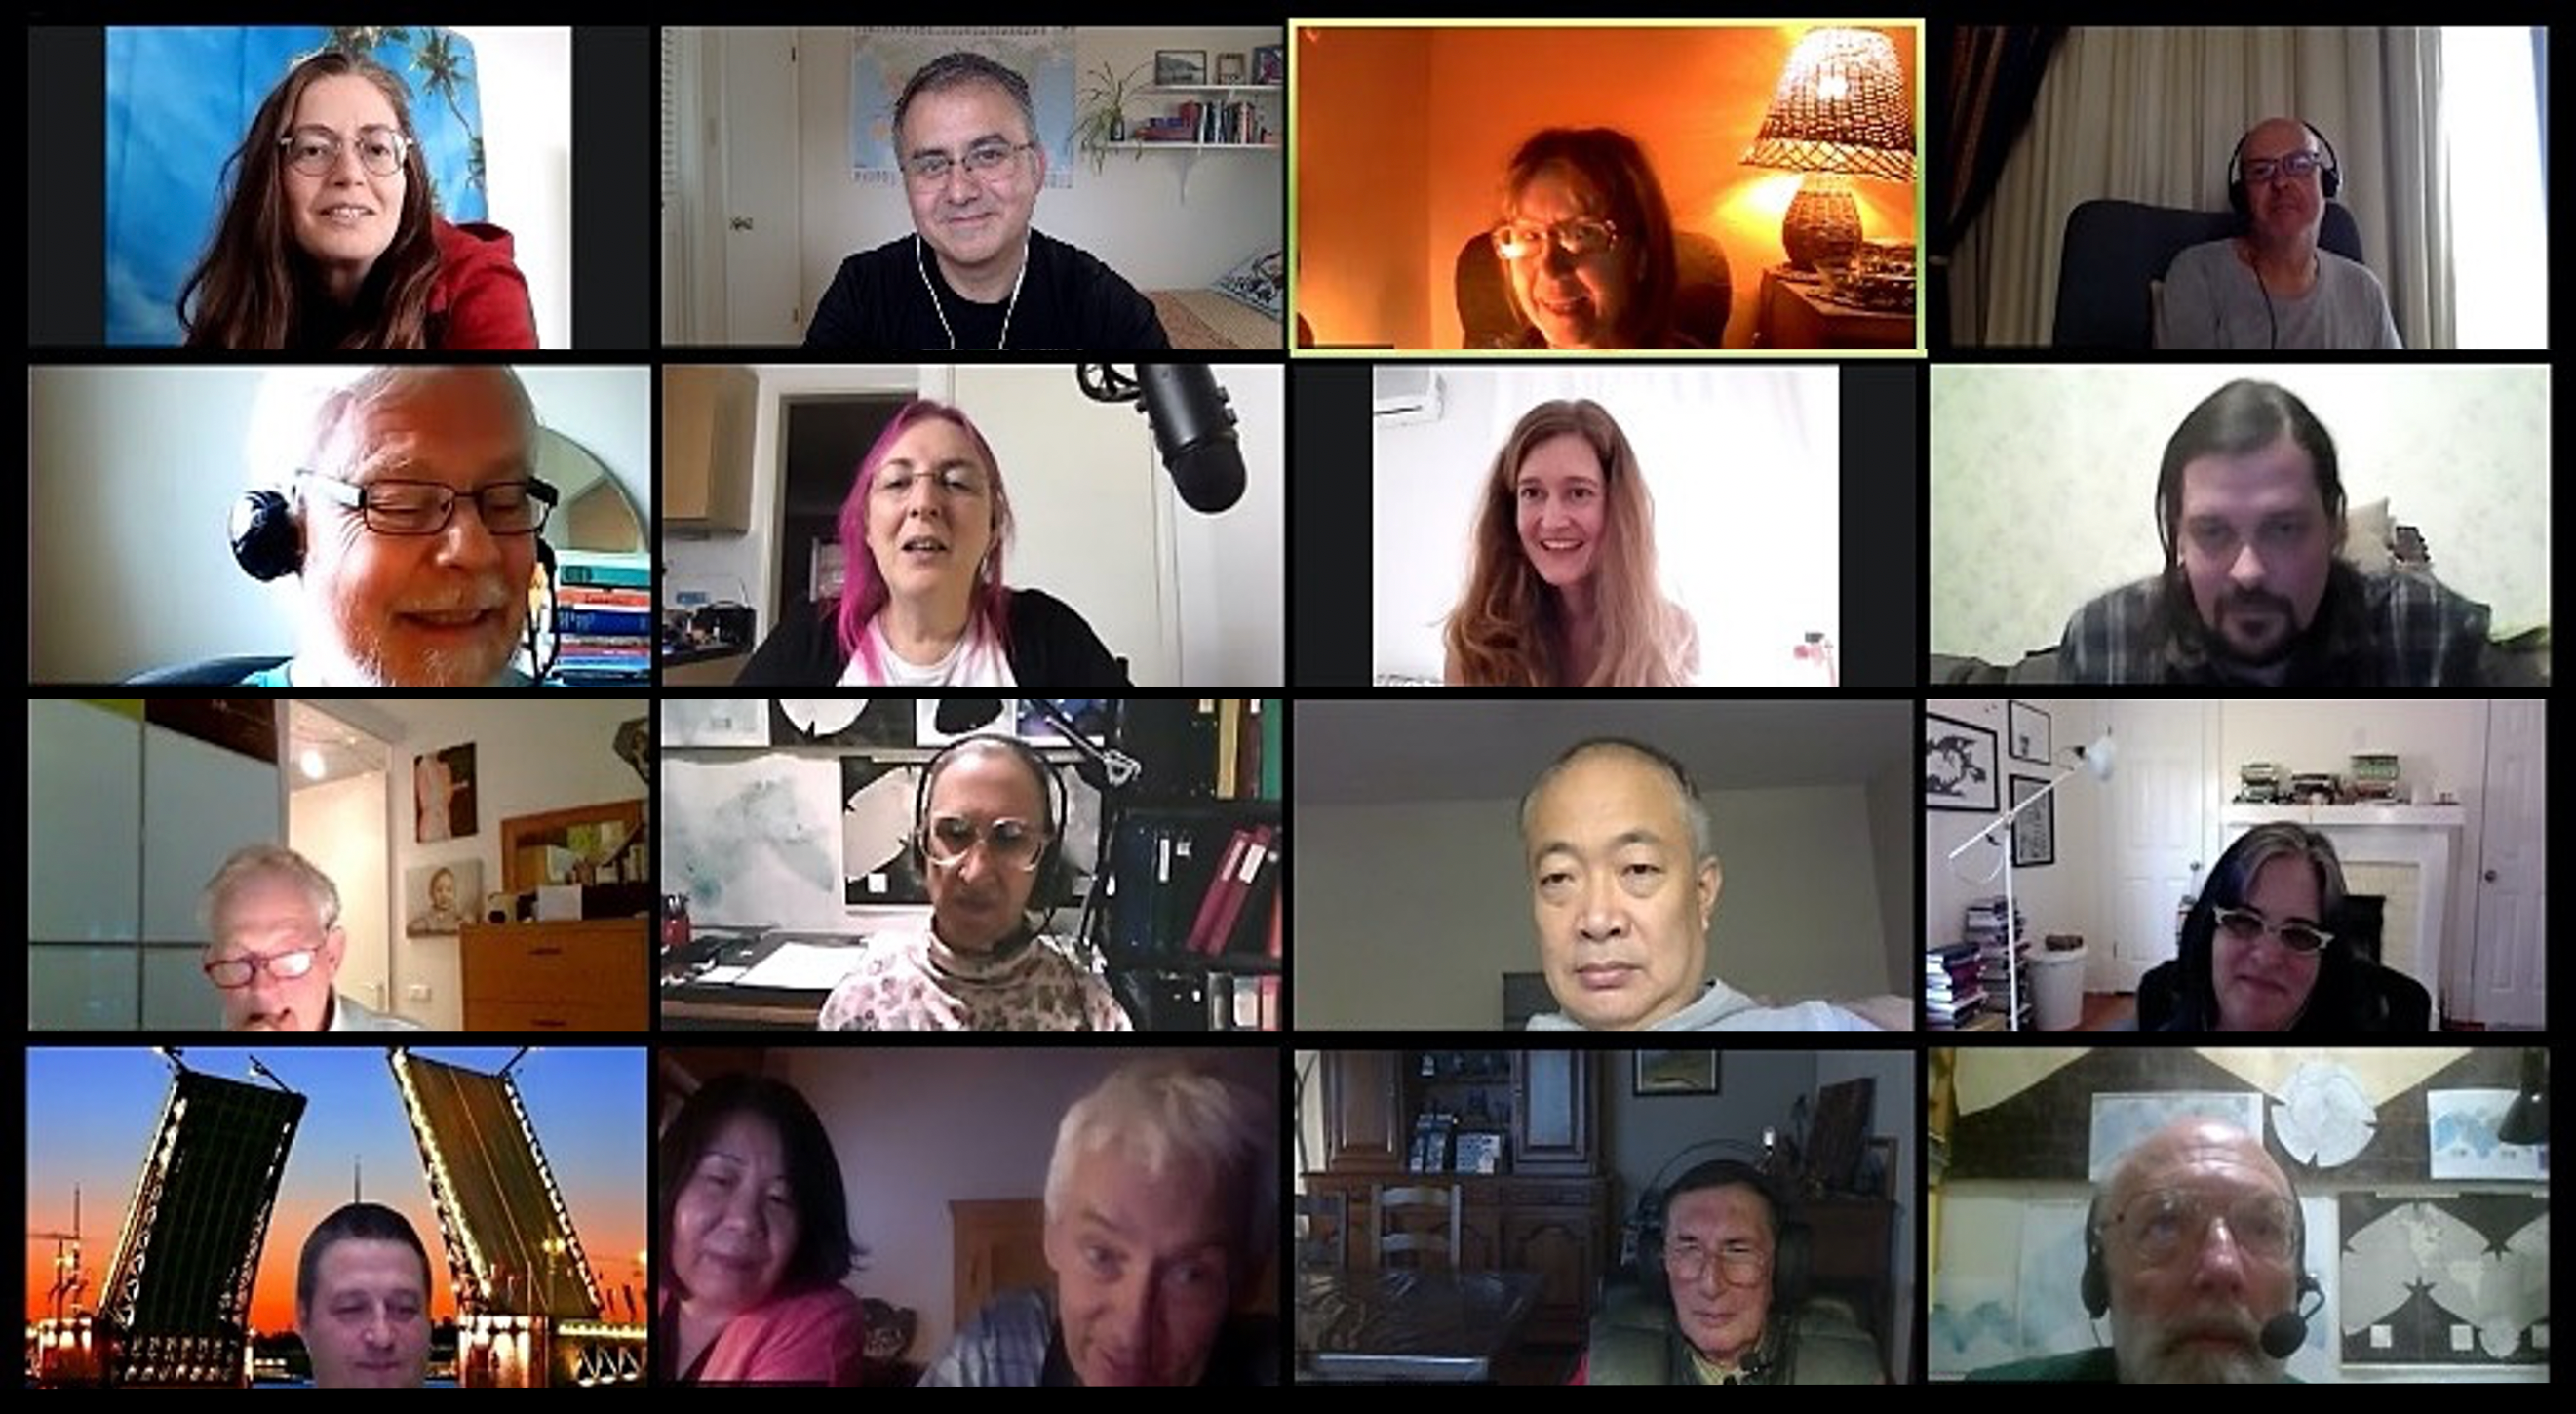 Screenshot of Zoom. 16 faces are arranged in a 4 by 4 design. These are participants in a Duolingo Esperanto language exchange.